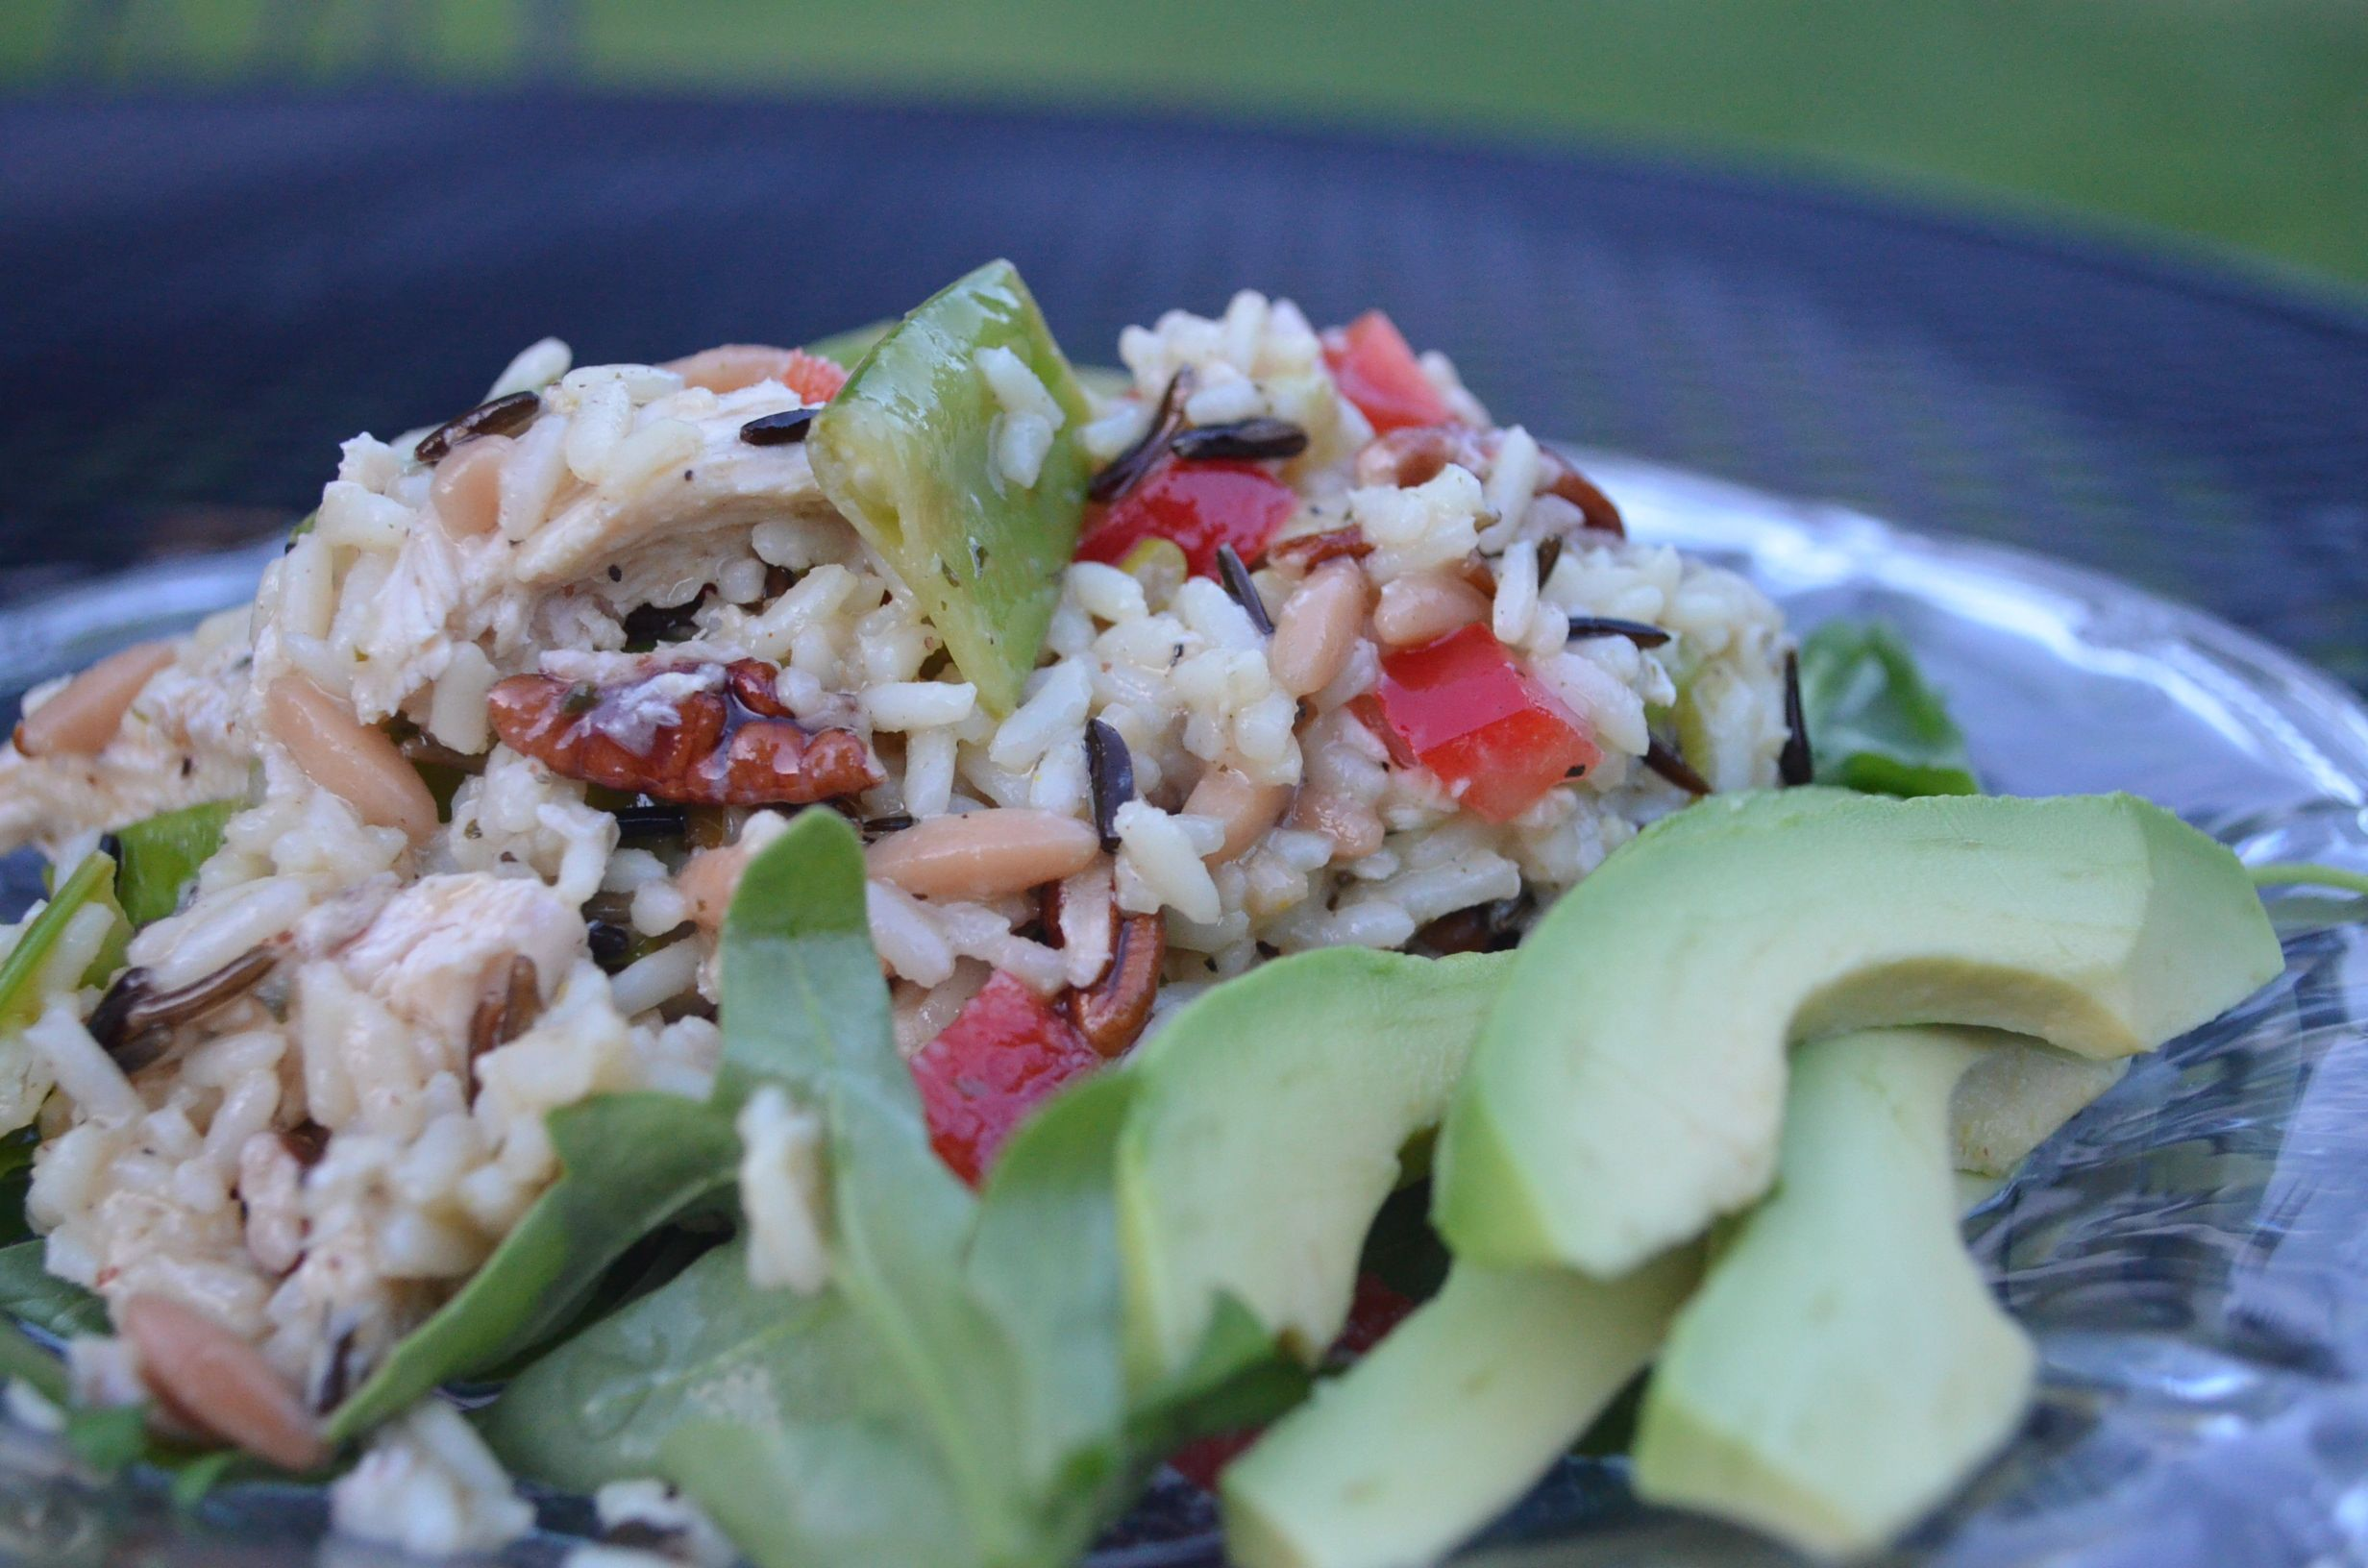 Santa Rosa Valley Chicken Salad